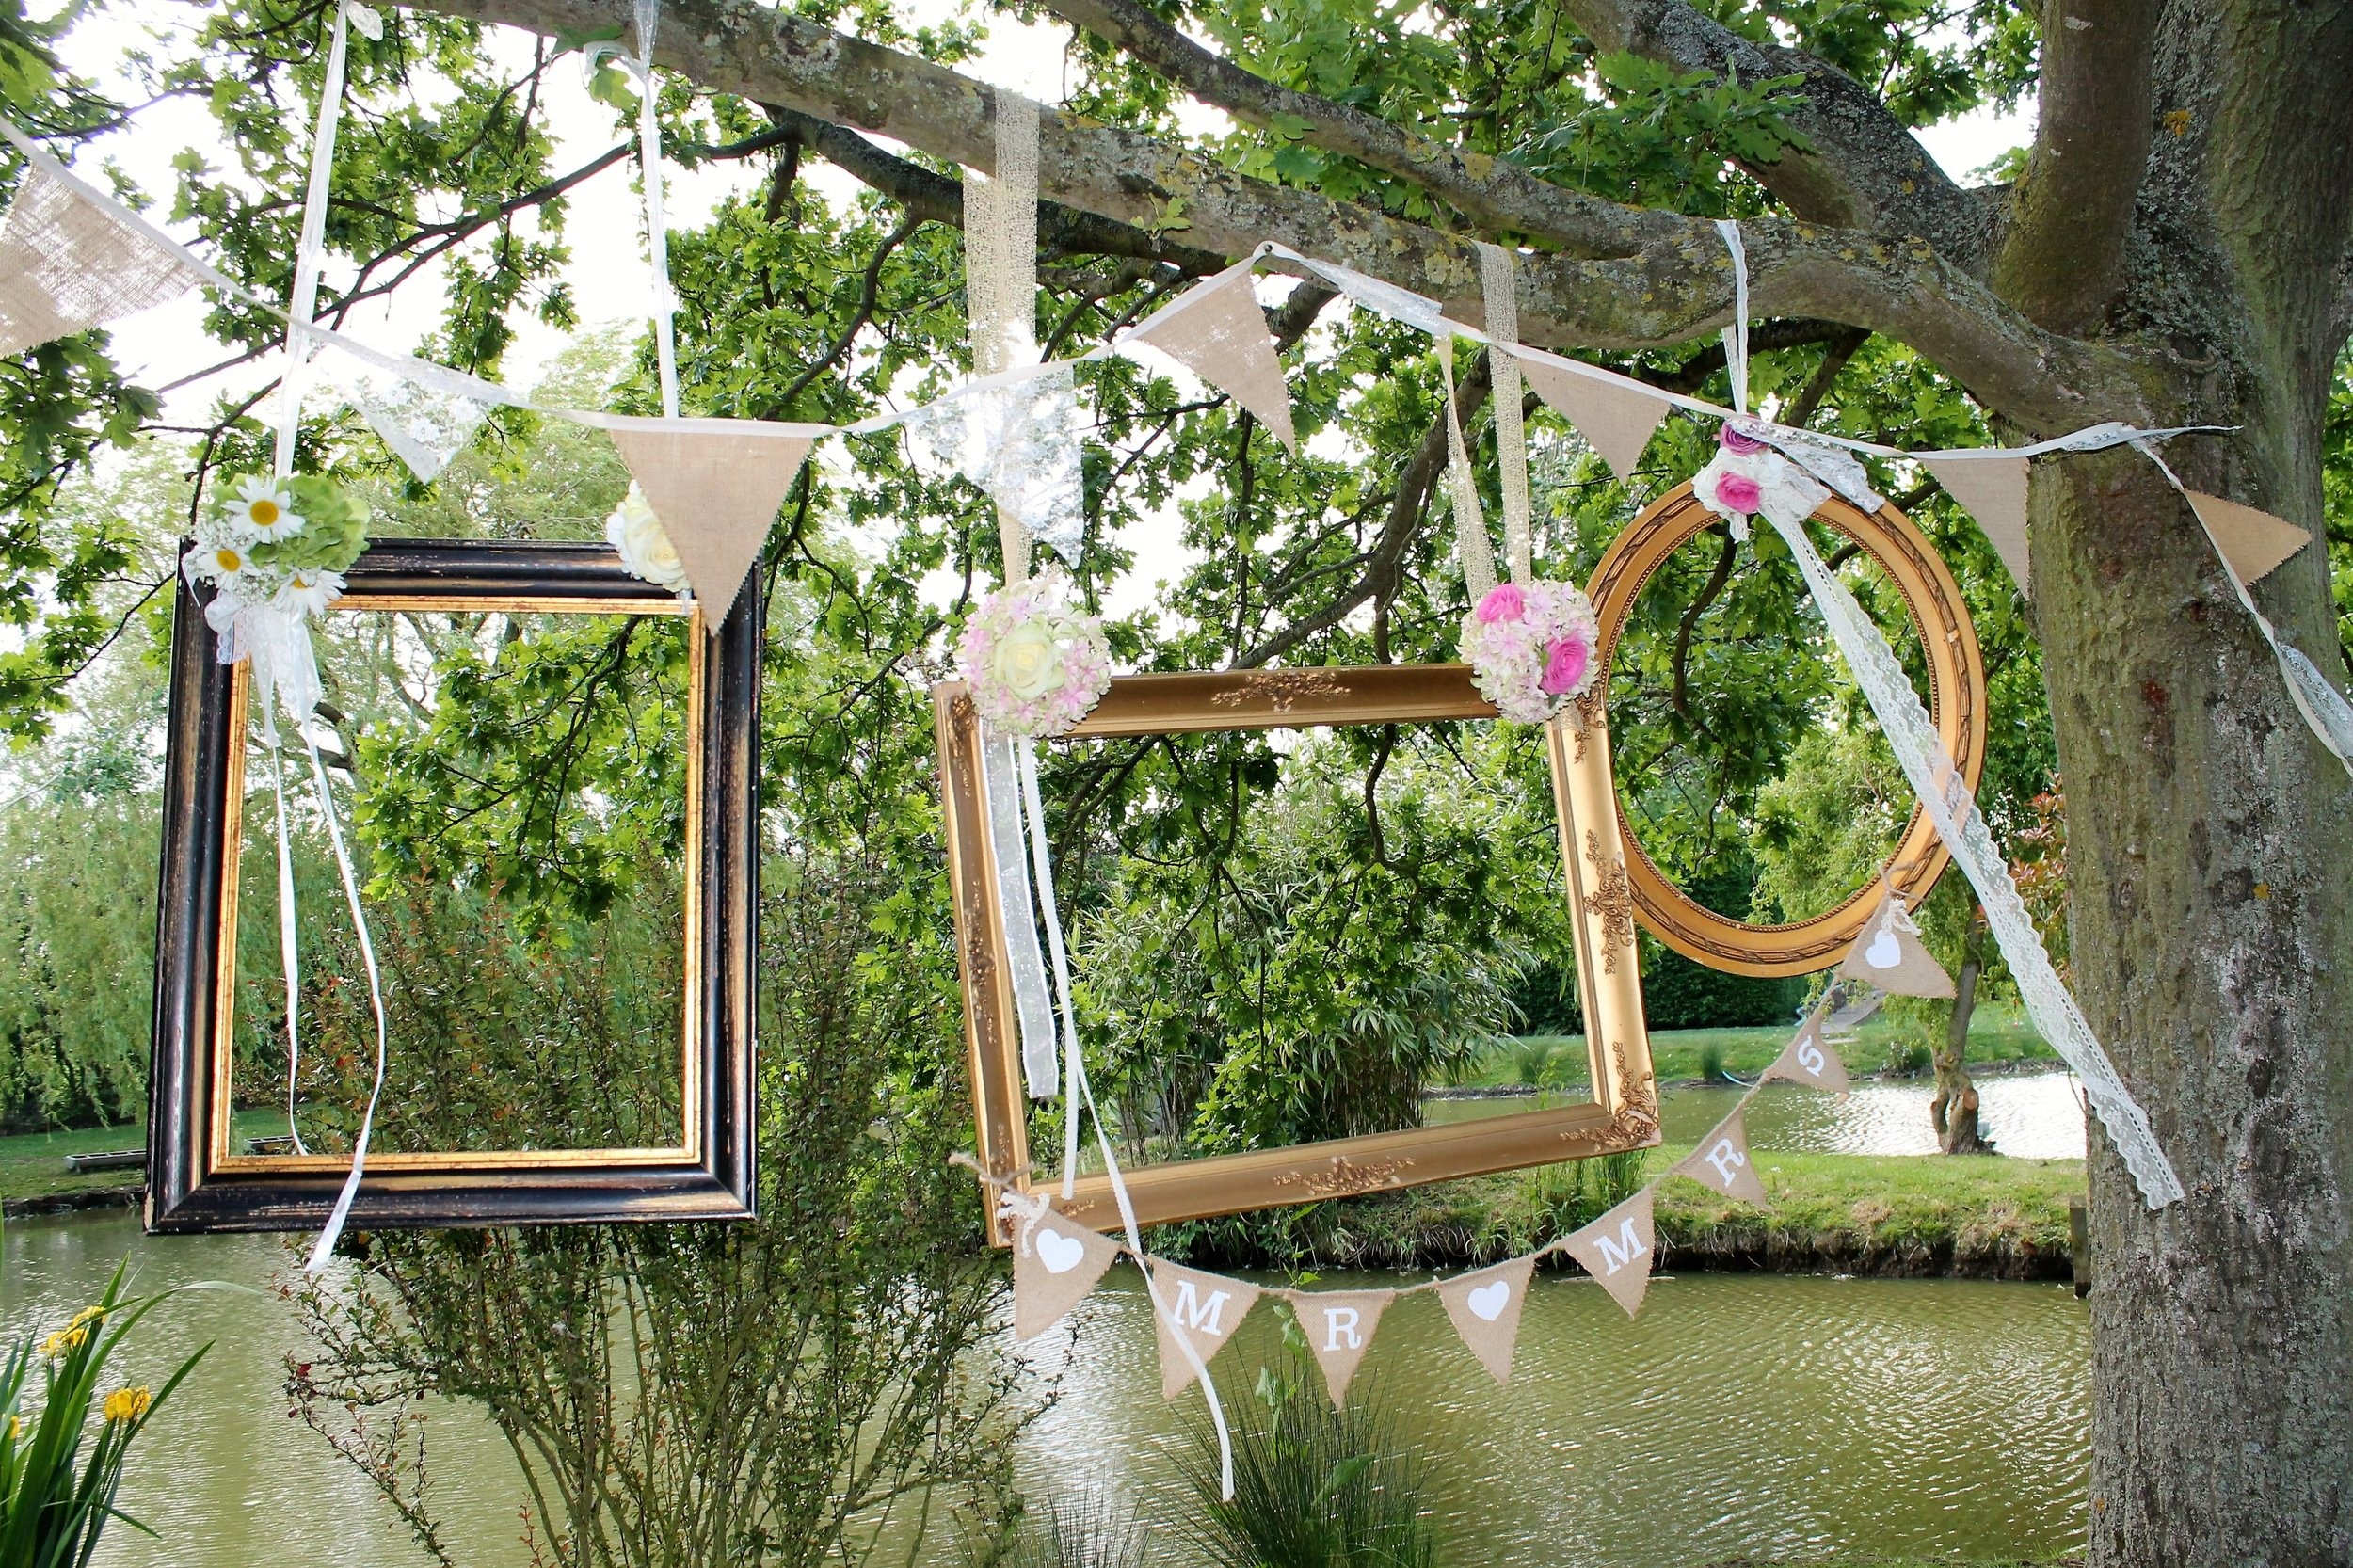 inventory - inspiration Vintage frames in trees.JPG